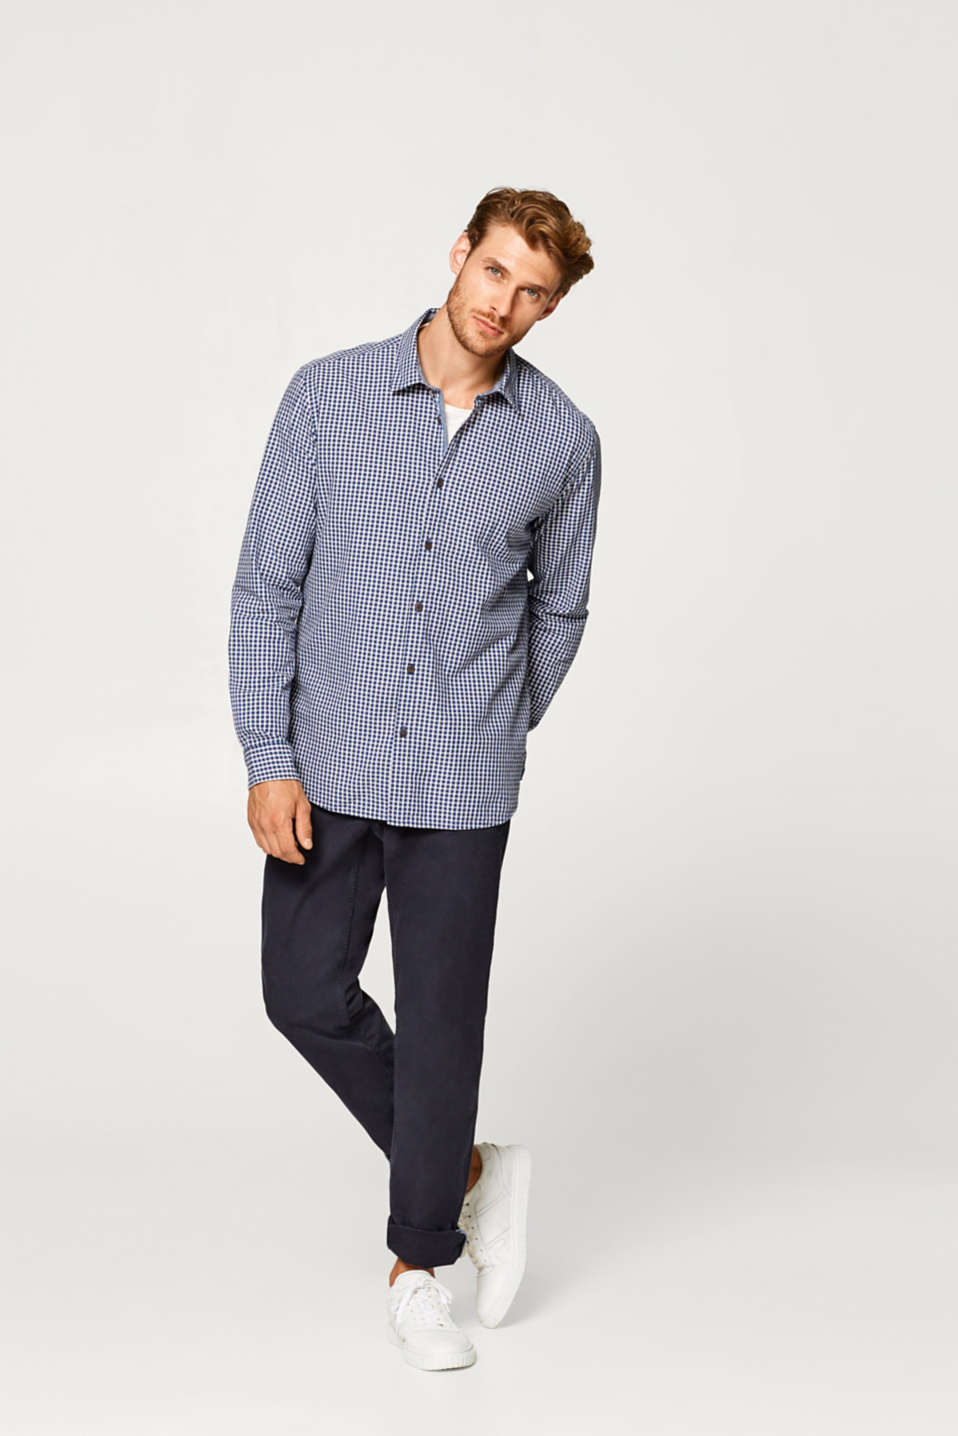 Shirt with a check pattern, 100% cotton